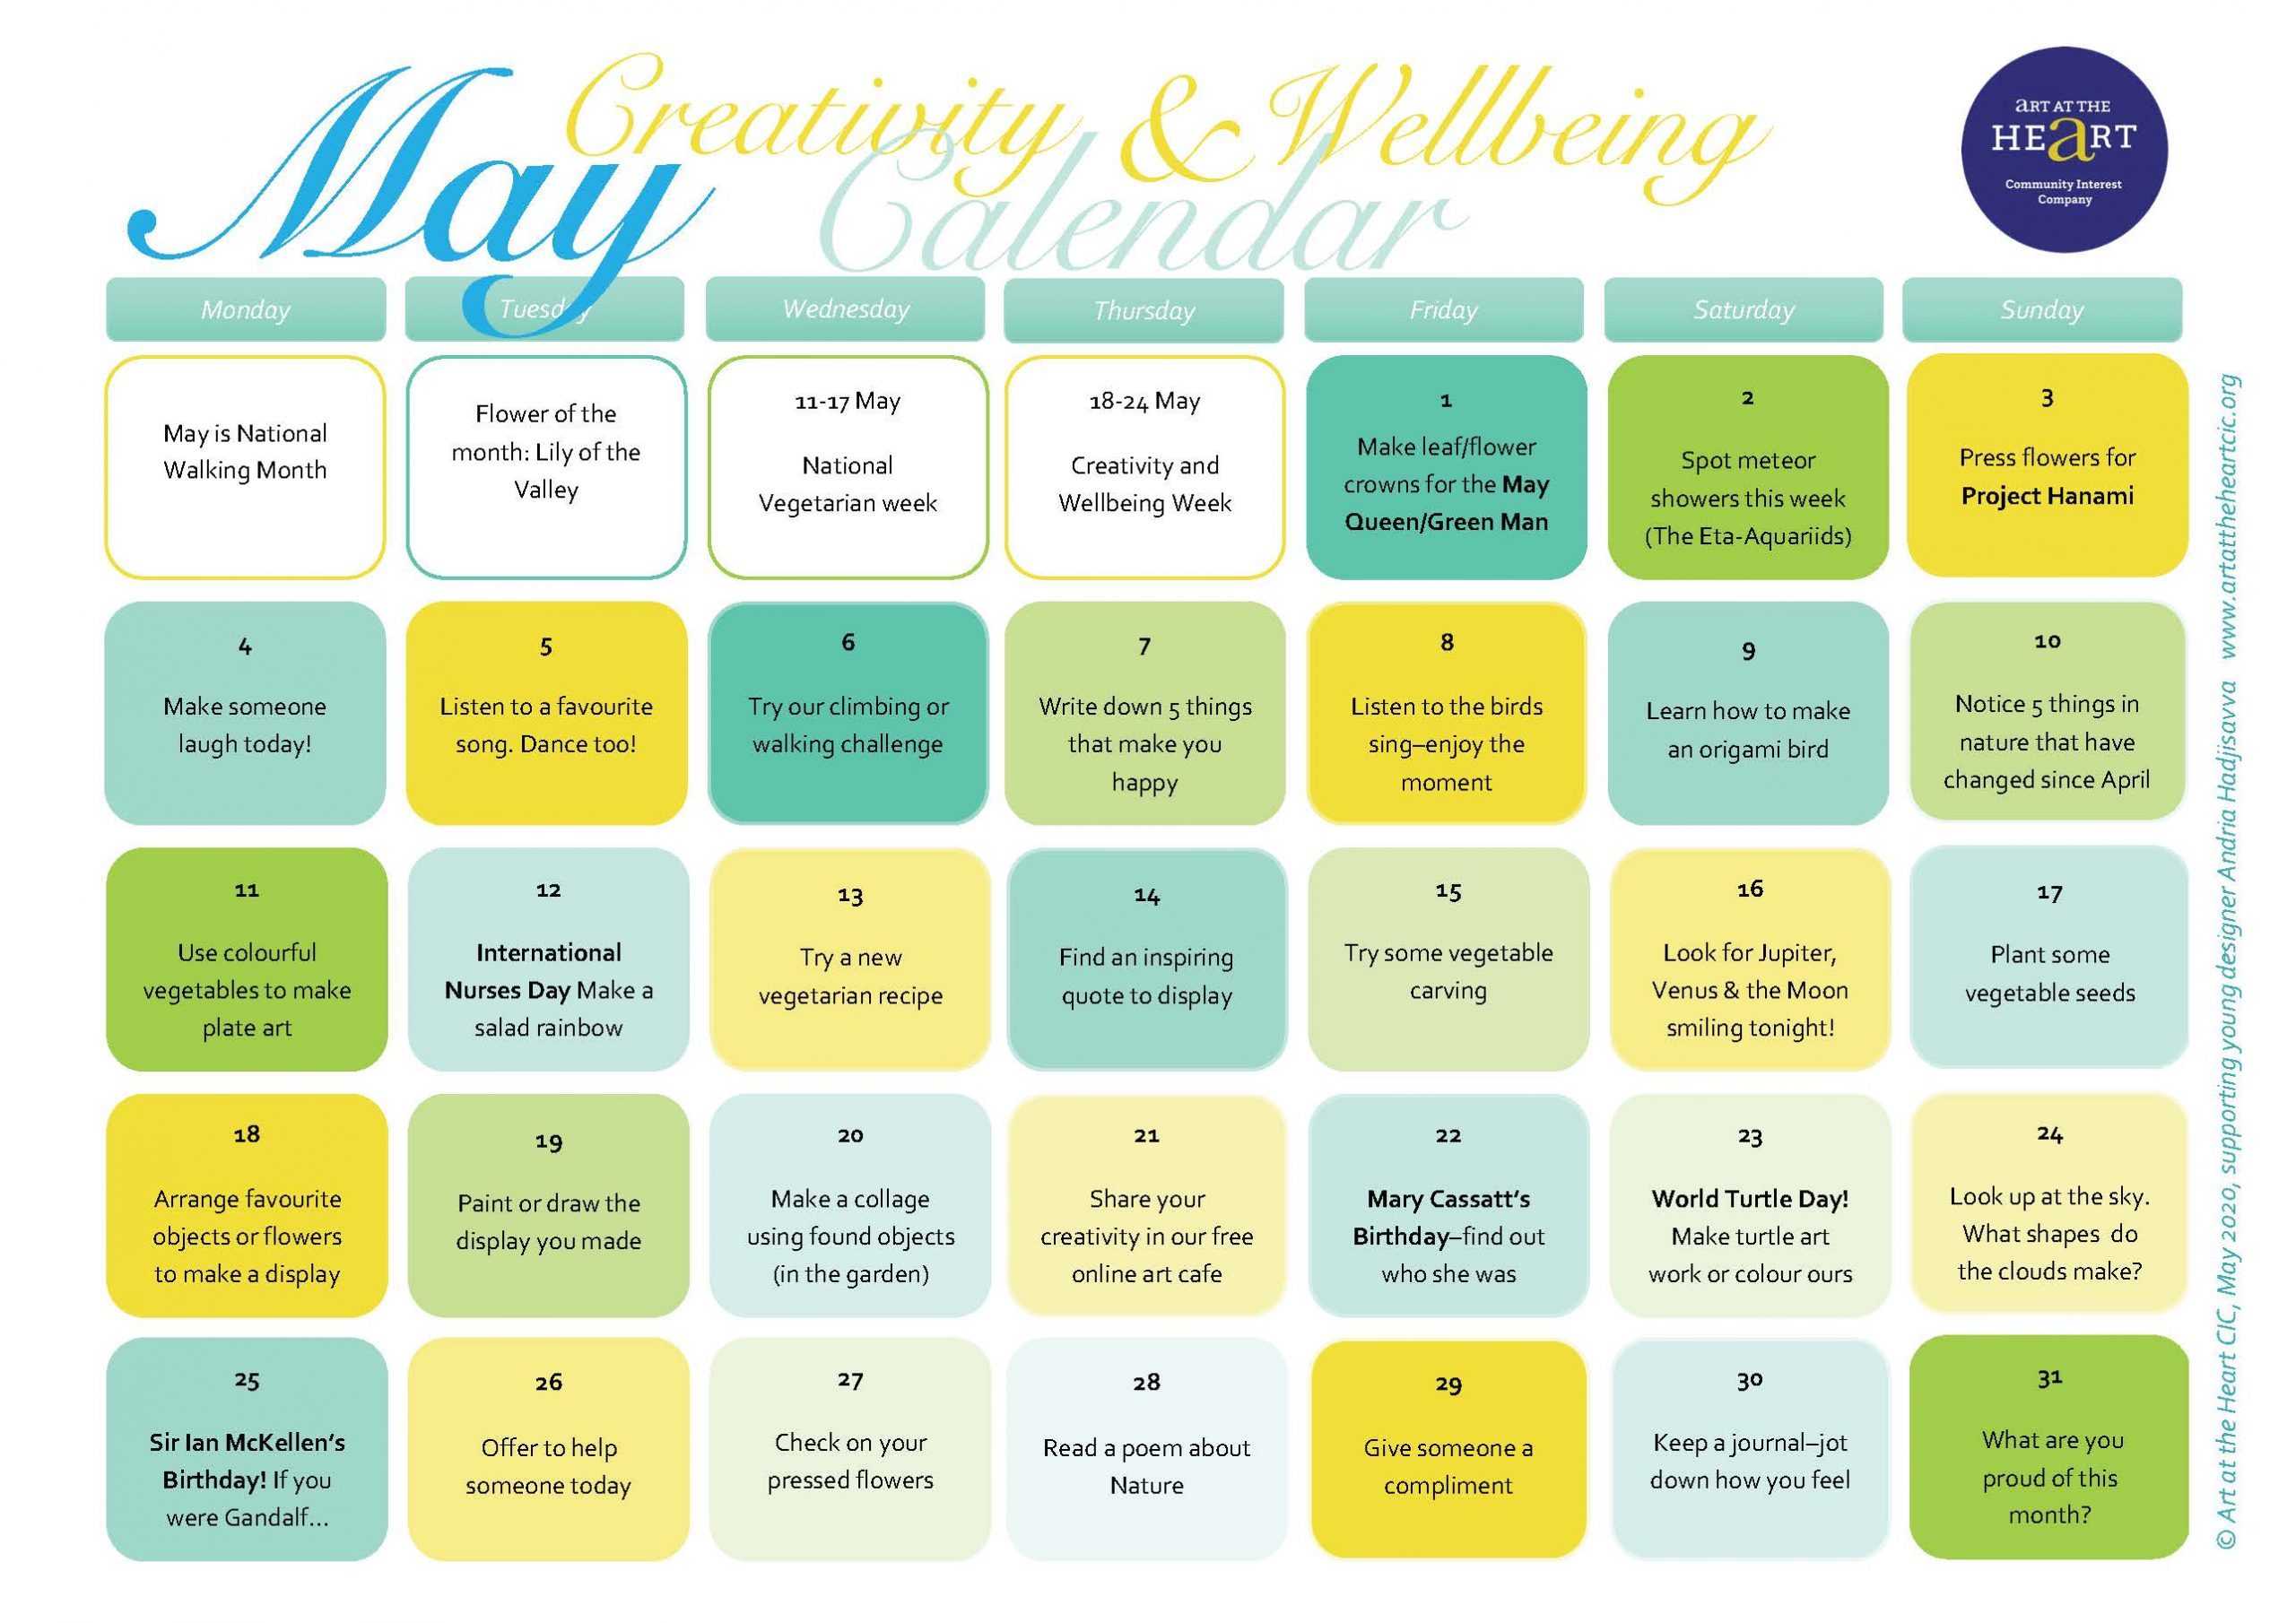 Daily Creativity and Wellbeing Activities for May